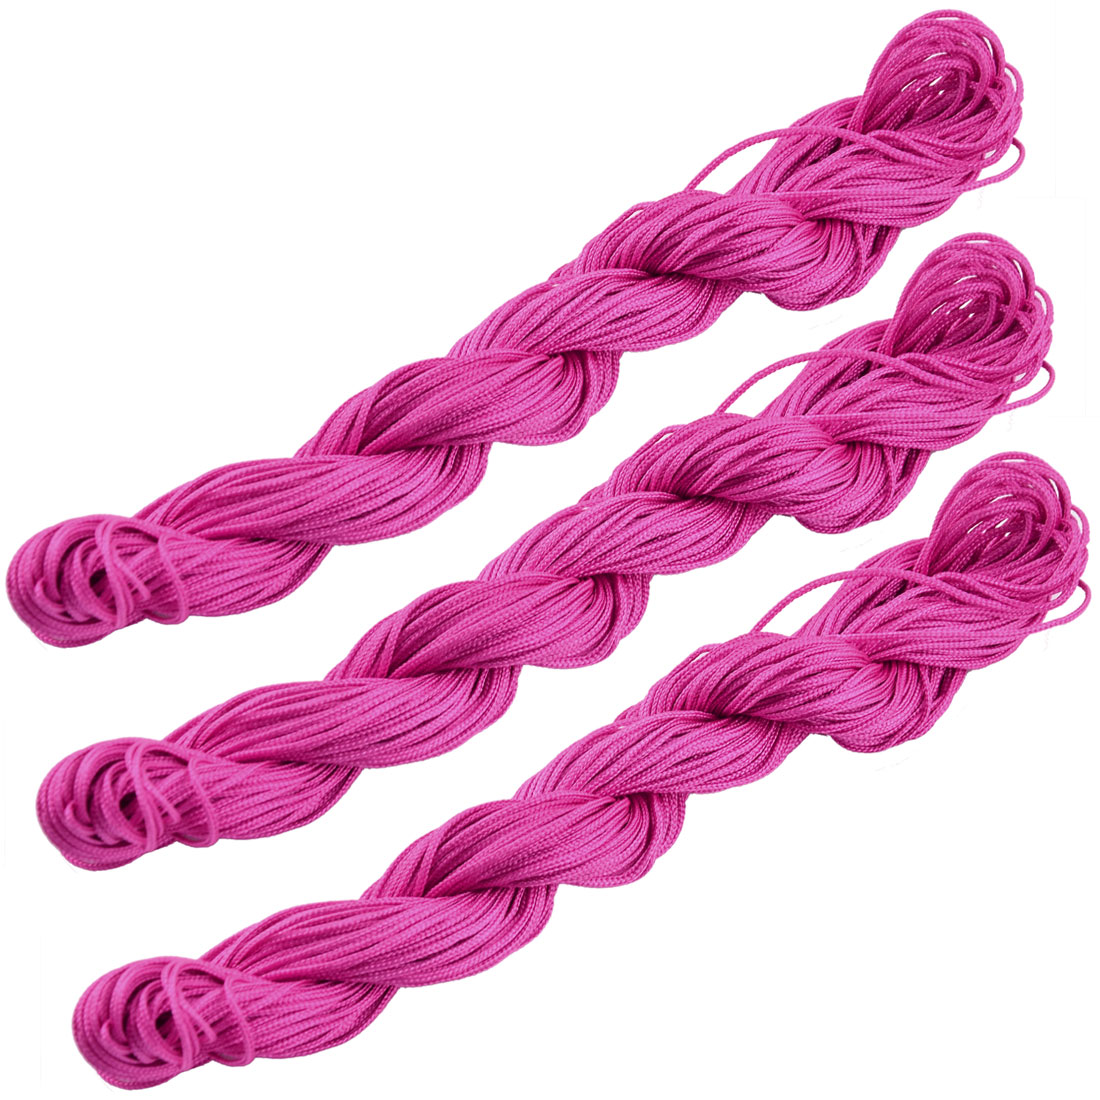 Unique Bargains Polyester Craft Chinese Knot Jewelry Making Rattail Cord Fuchsia 31 Yards 3pcs